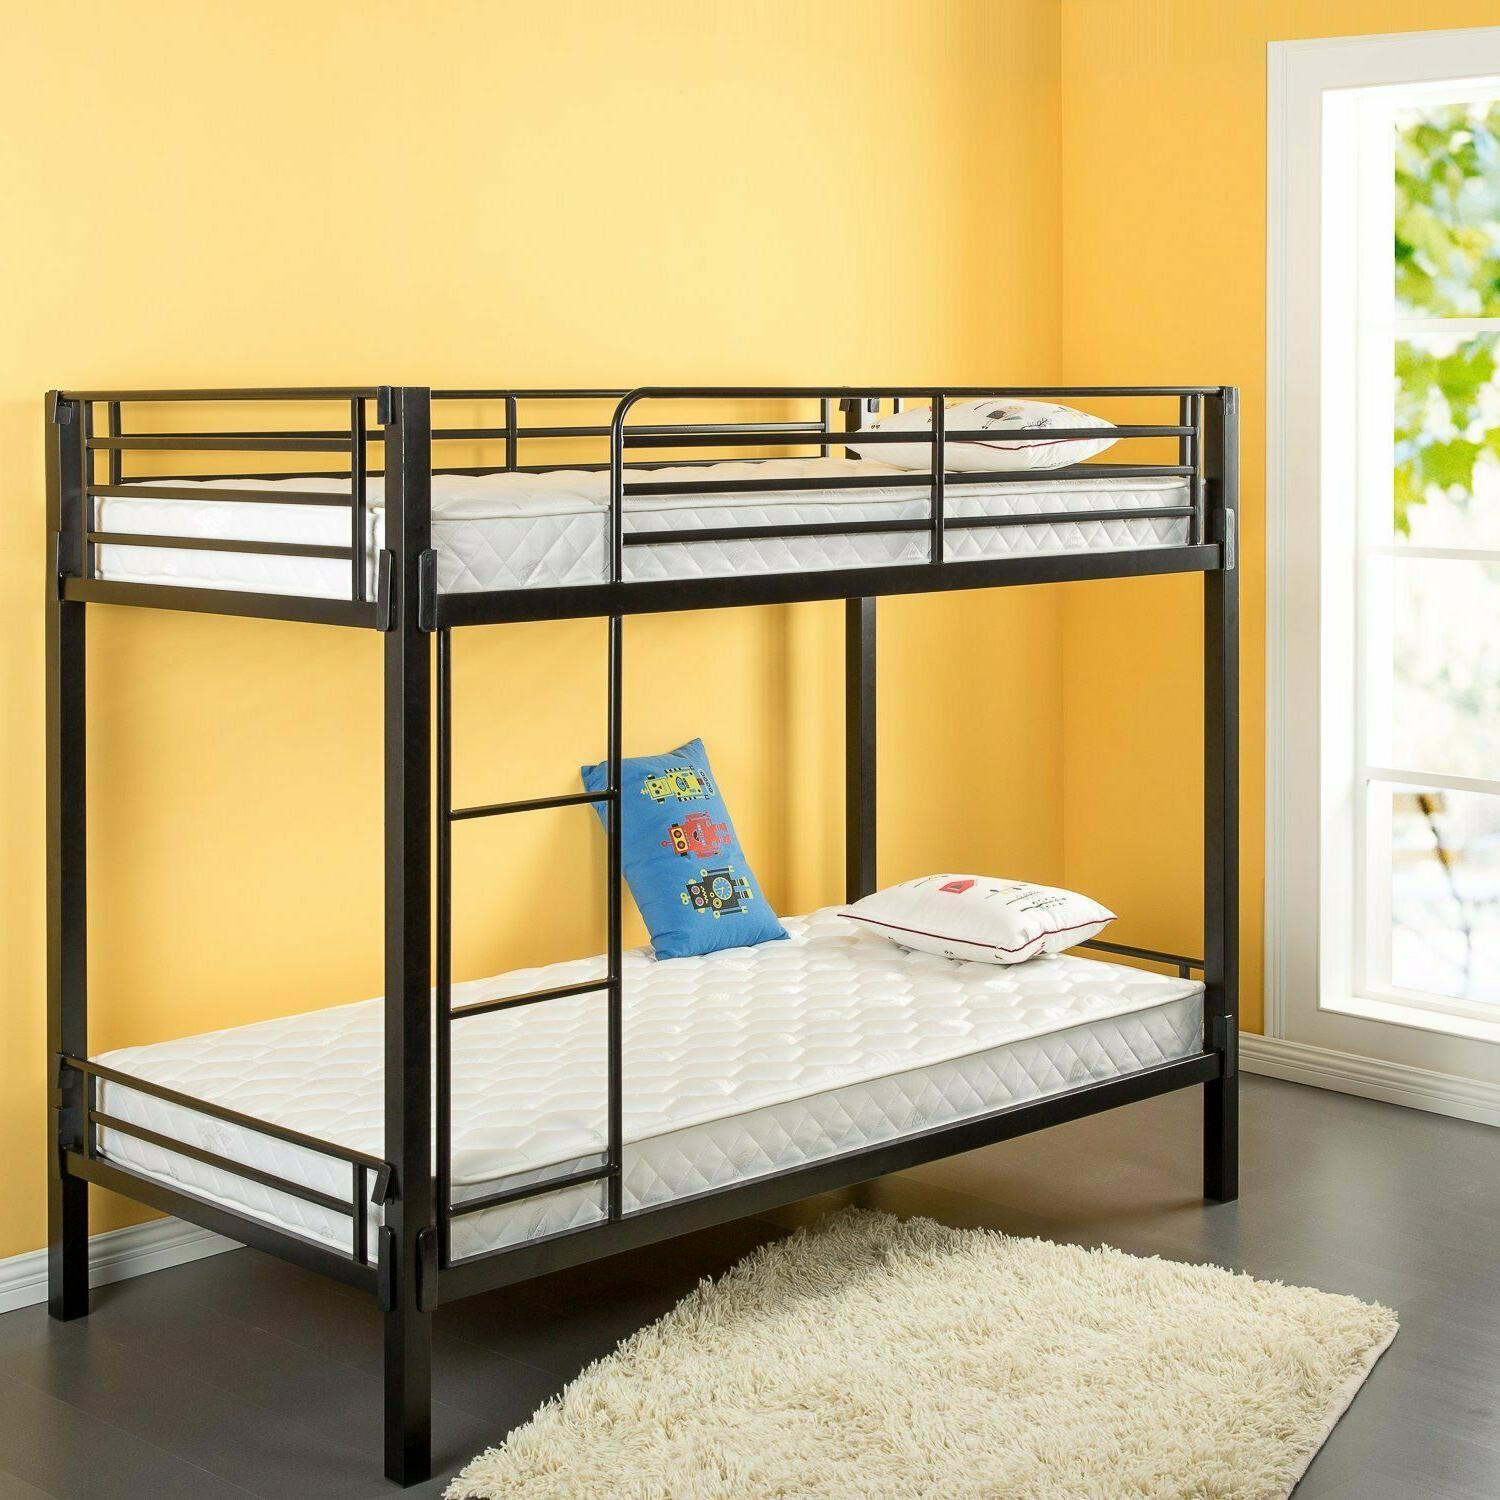 Zinus Inch Twin 2 pack, Perfect Bunk Beds/Trundle Beds/Day